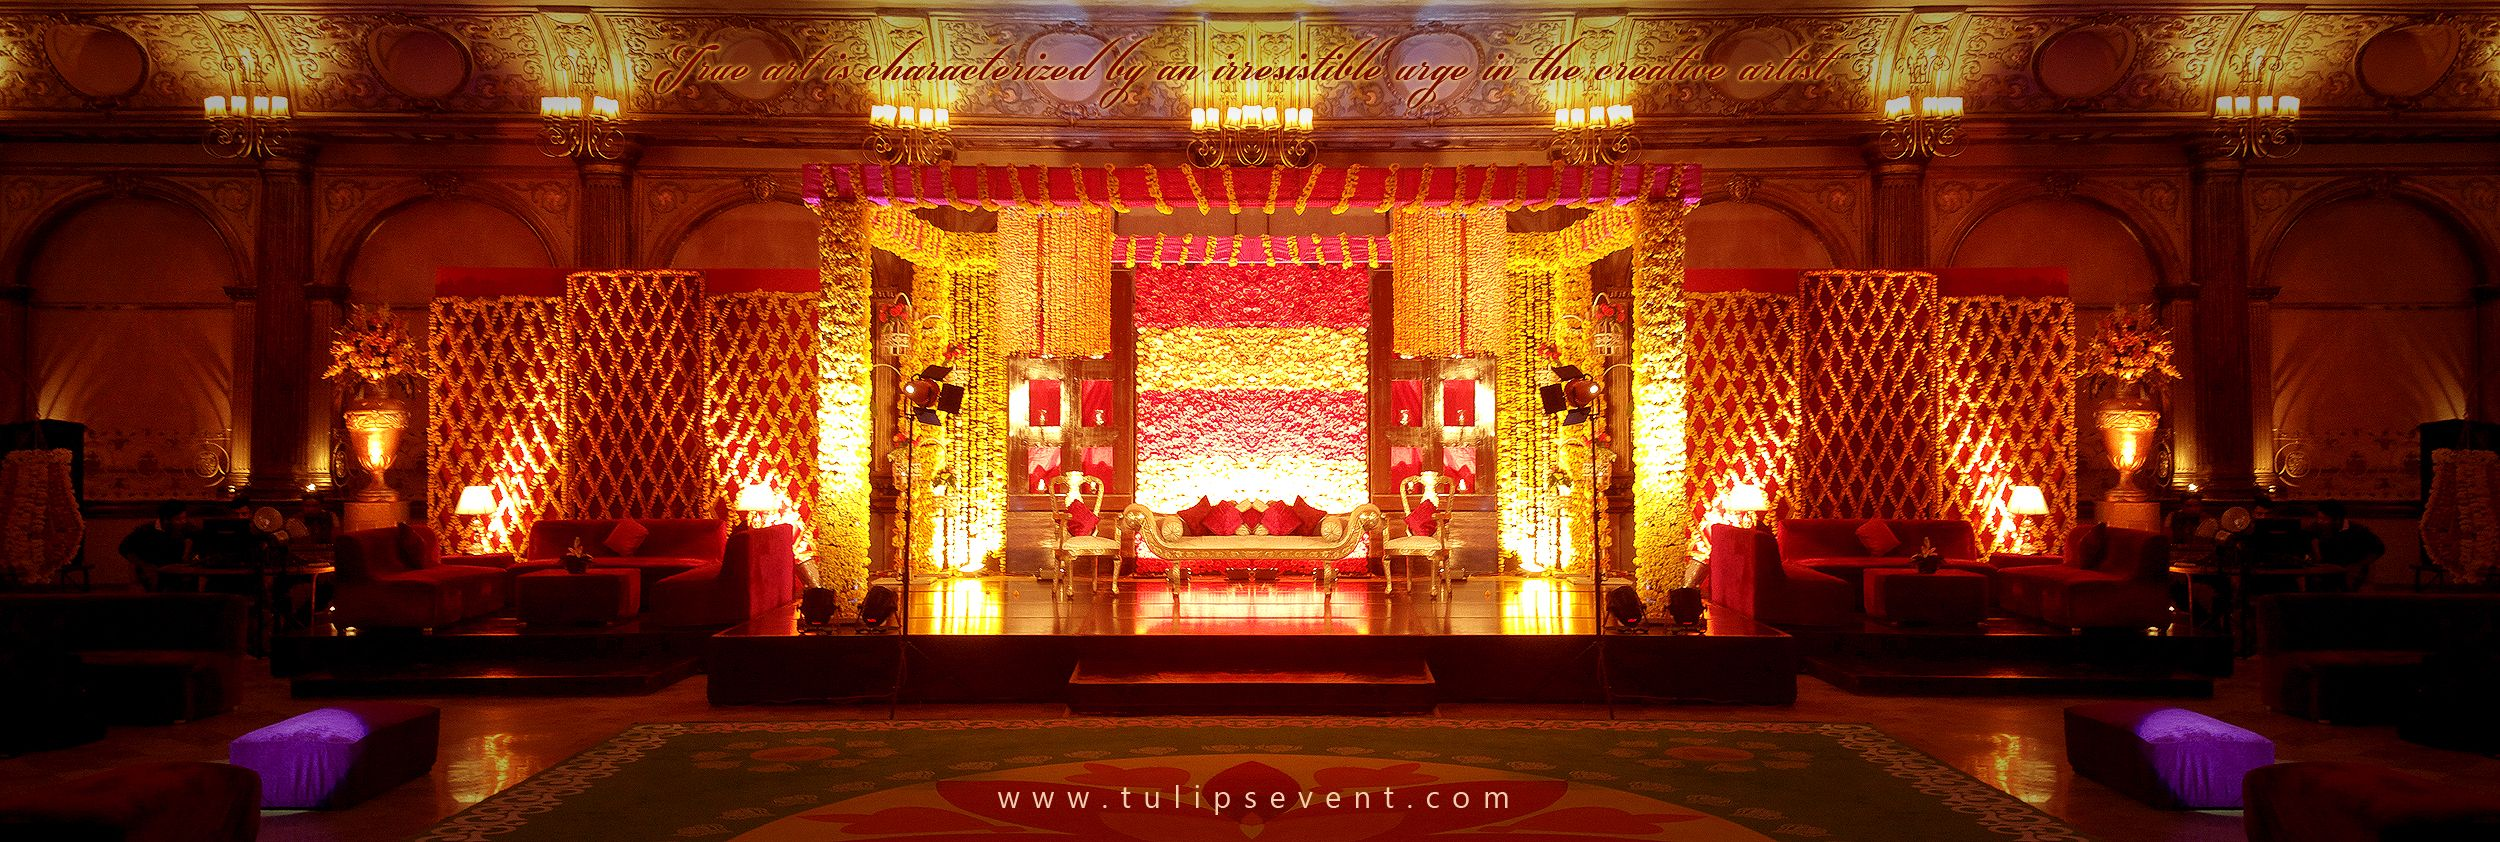 Grand Wedding Reception Stage Decor Perks in Lahore Pakistan